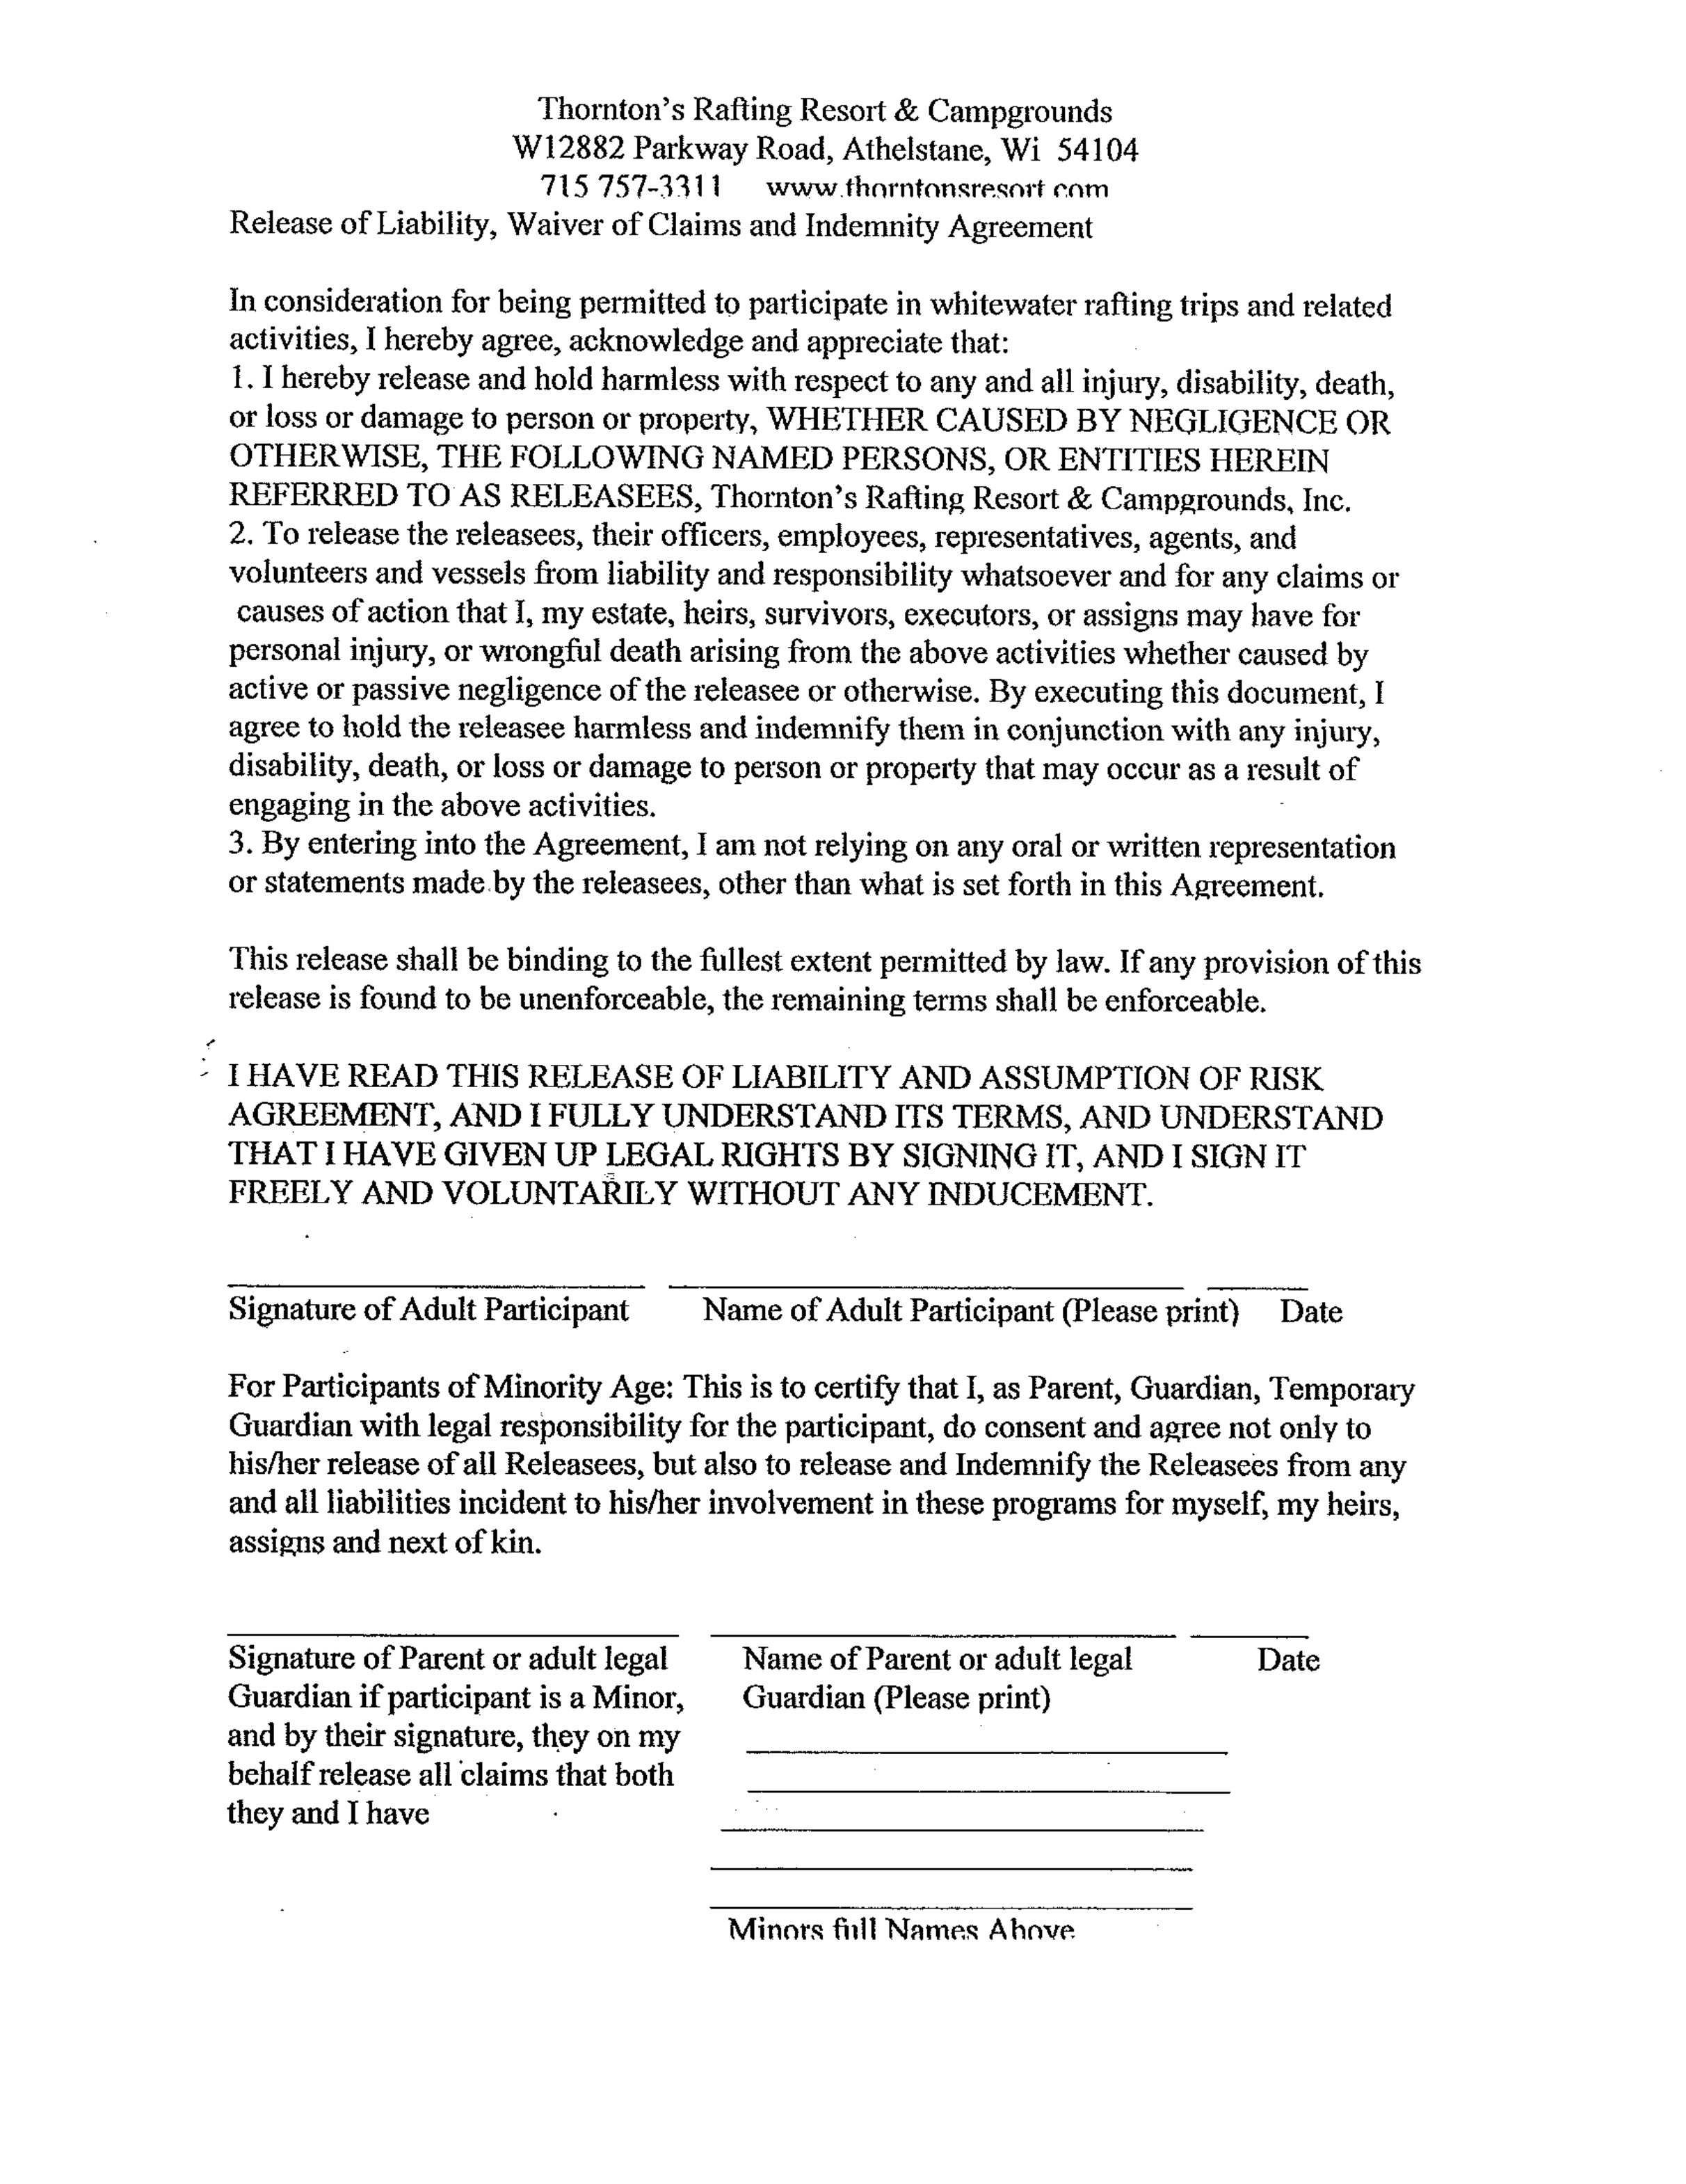 General Liability Waiver Form - Unitedijawstates.com